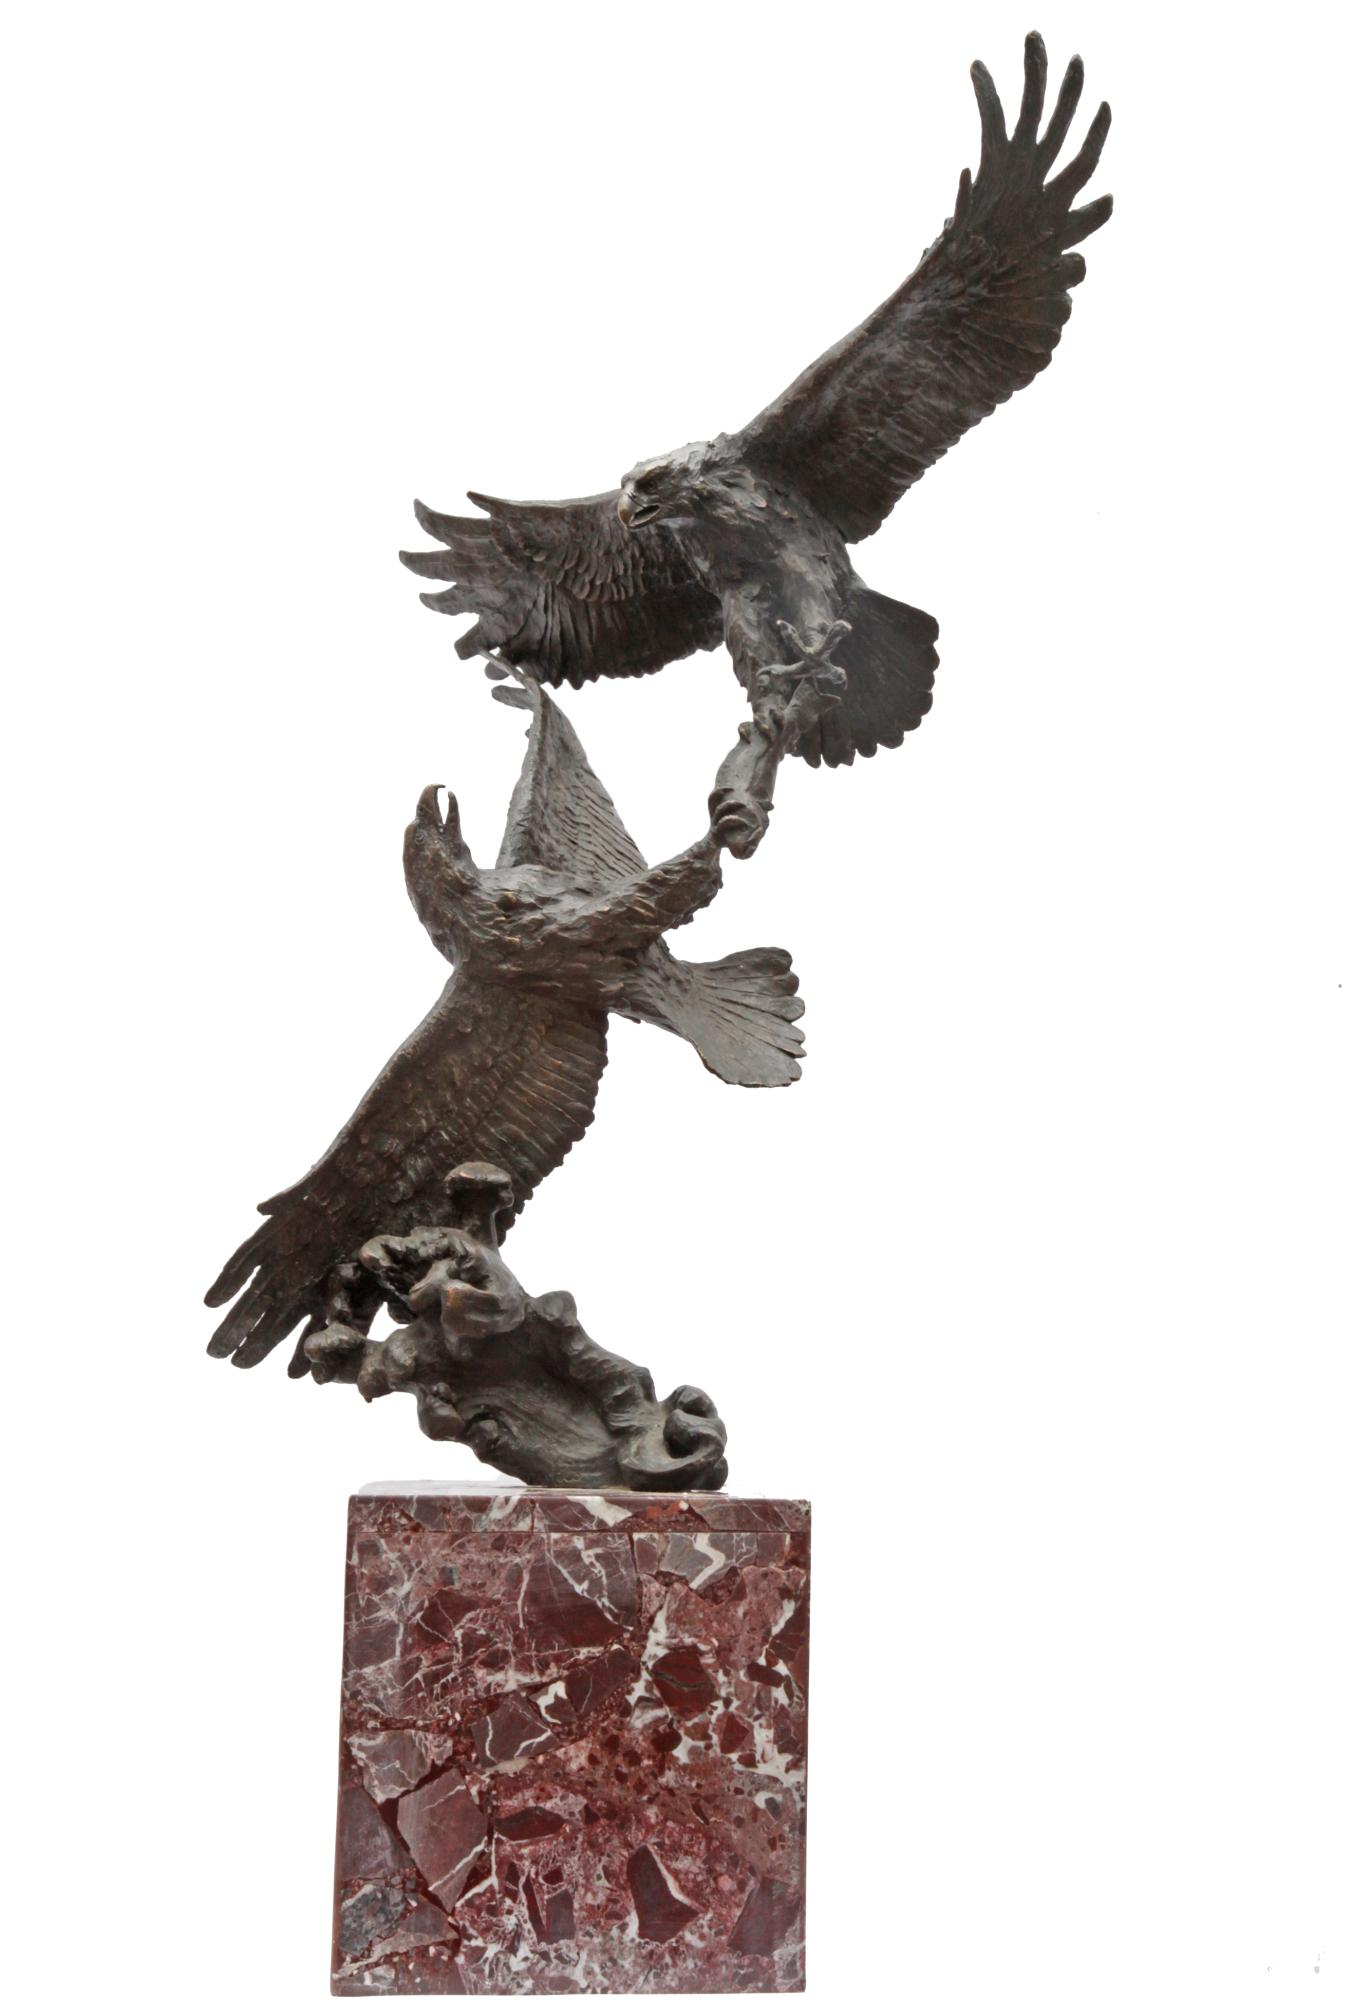 Lot 31 - Sculpture: Fighting Eagles, Bronze, Signed Milo, 82cm high by 39cm wide by 32cm deep